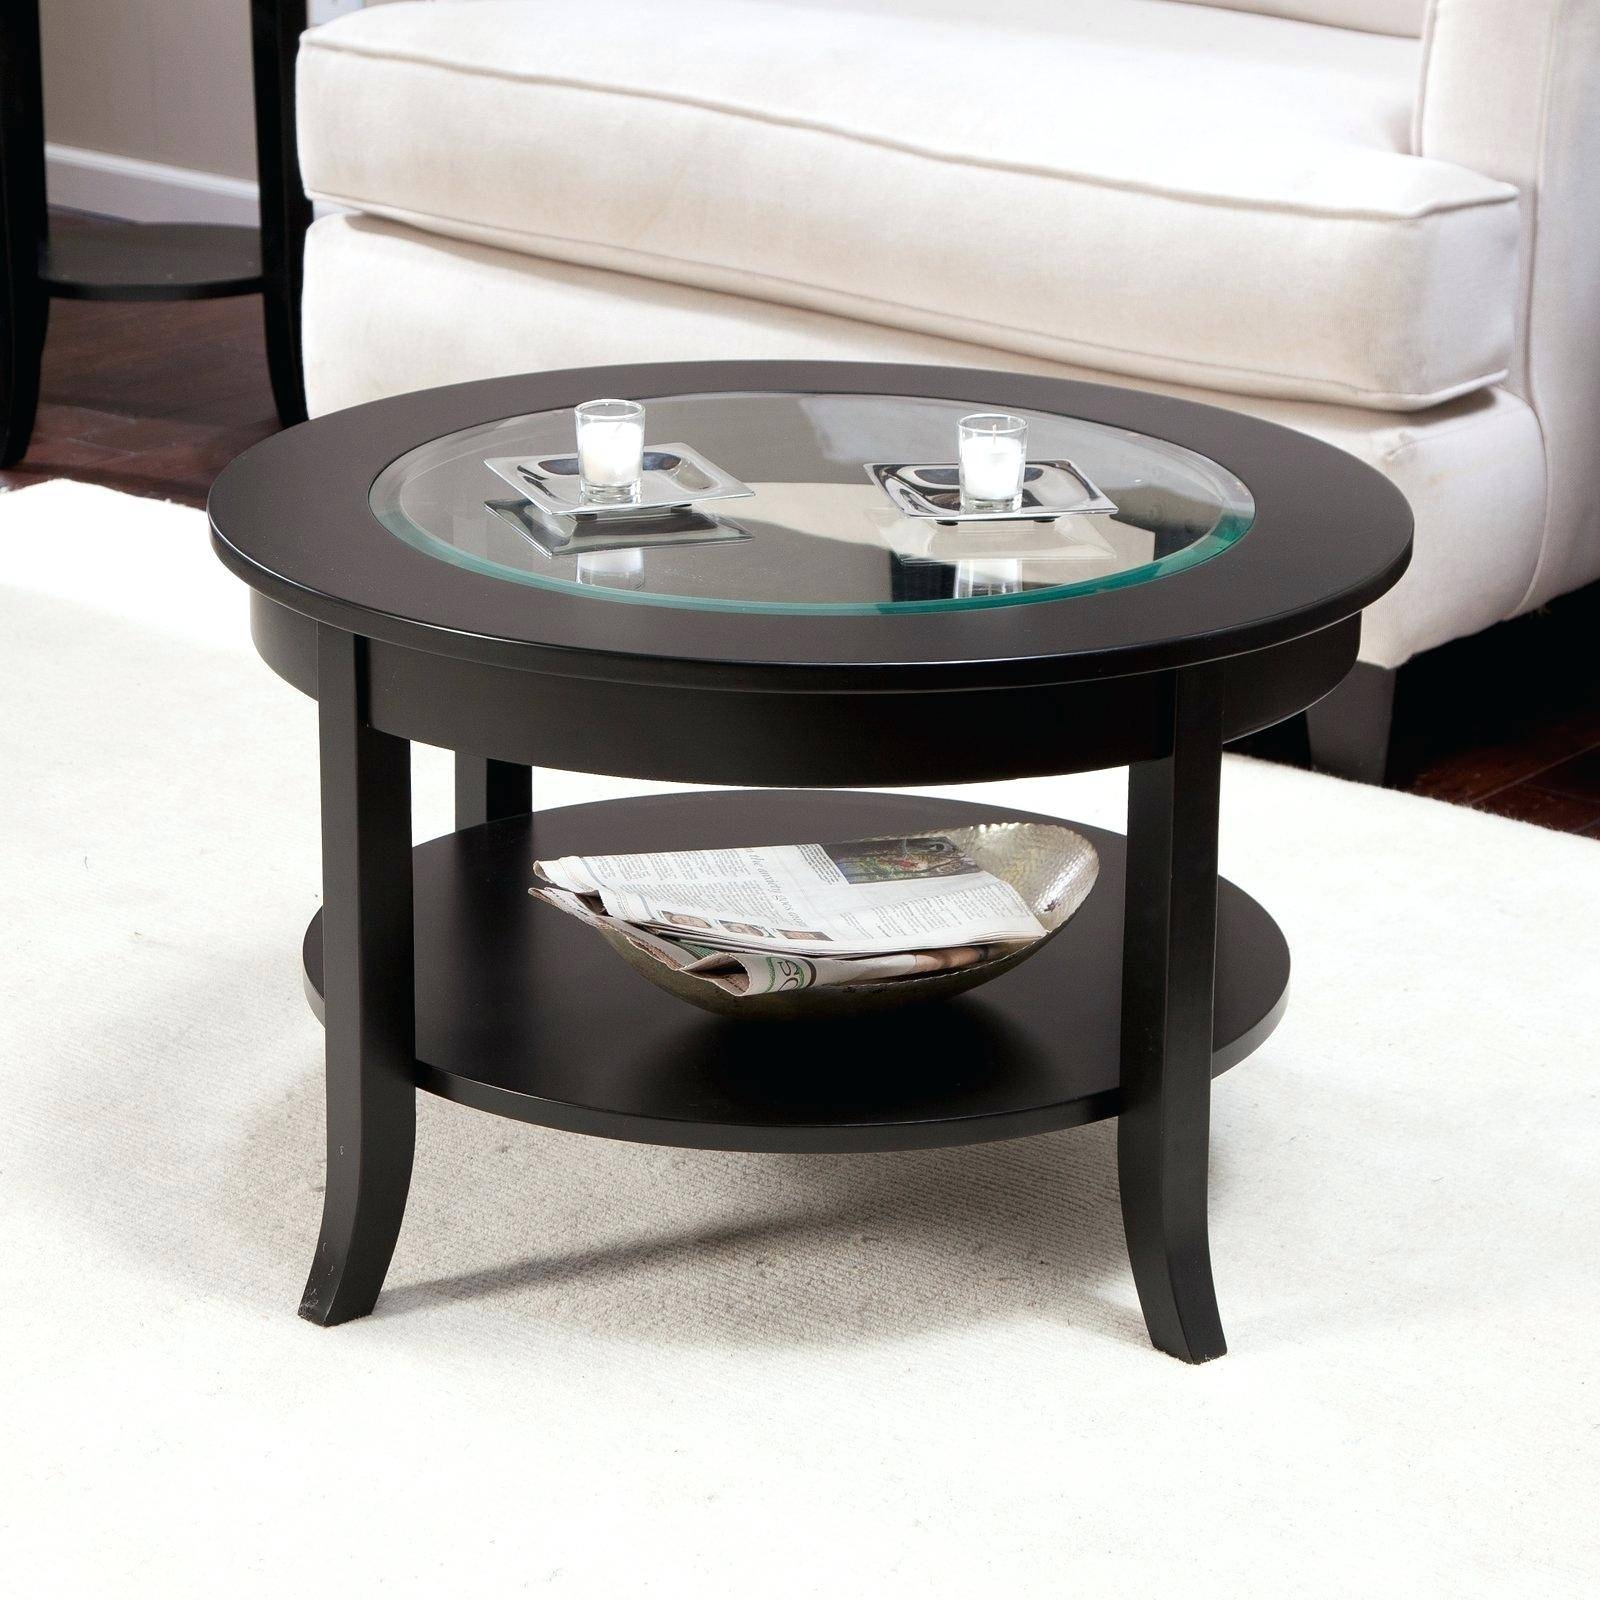 Furniture: Small Oval Coffee Table | Target Living Room Tables in Cheap Oak Coffee Tables (Image 20 of 30)